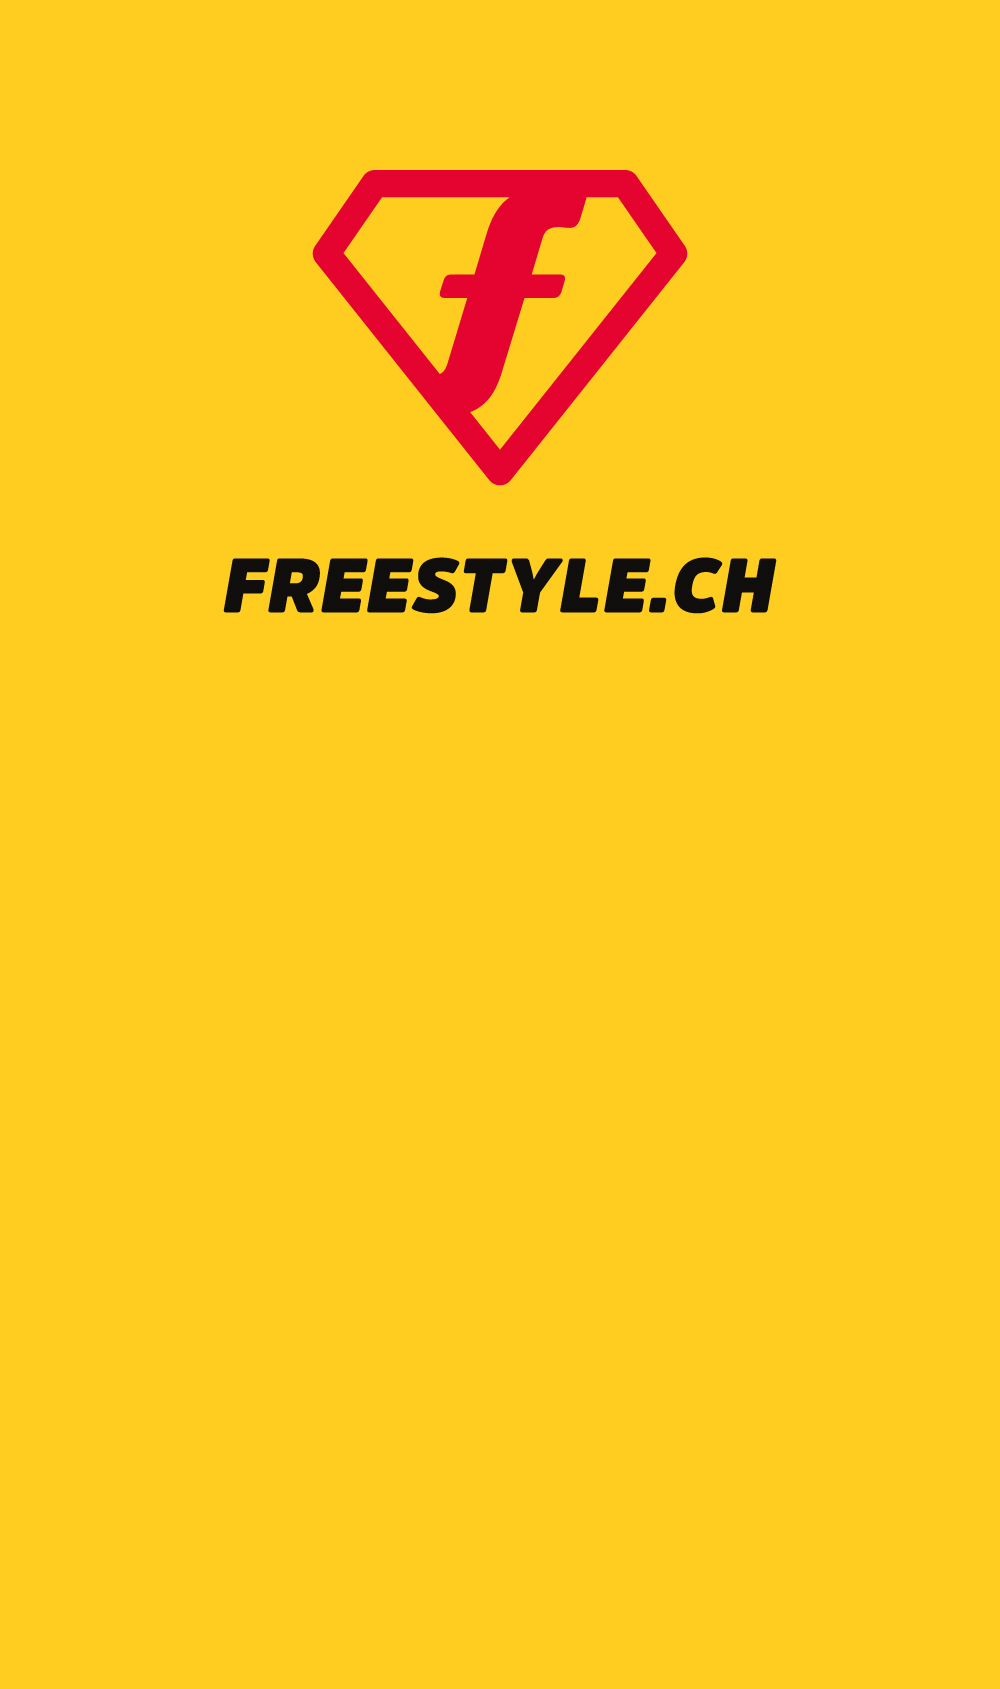 Freestyle_ch_About.jpg